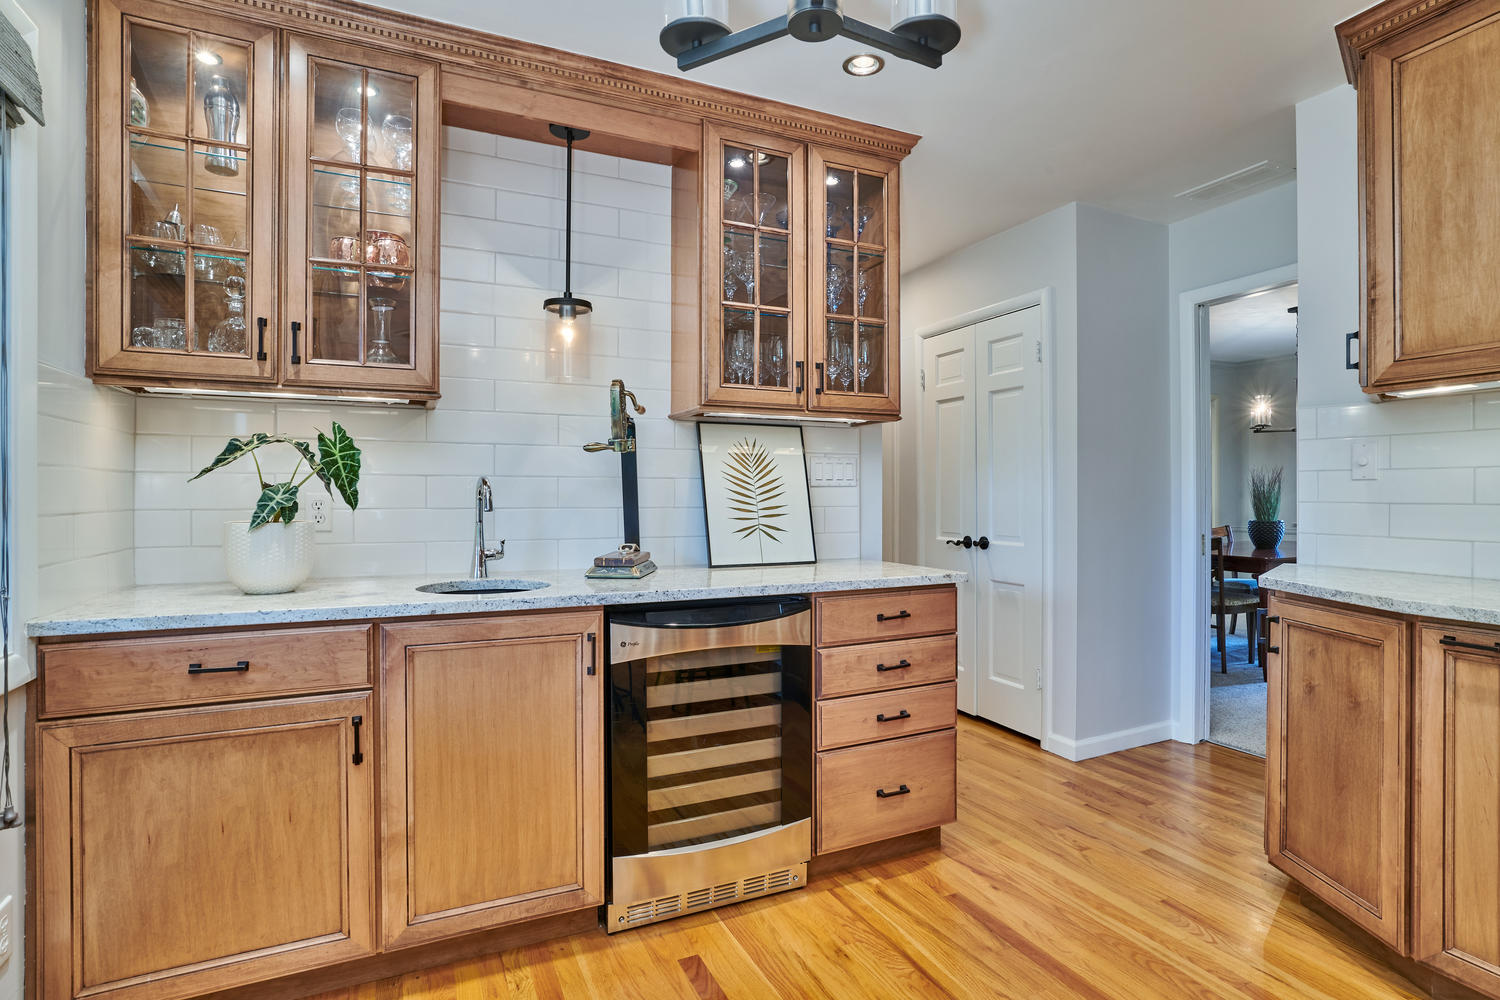 Butlers Pantry with Wet Bar & Wine Refrigerator